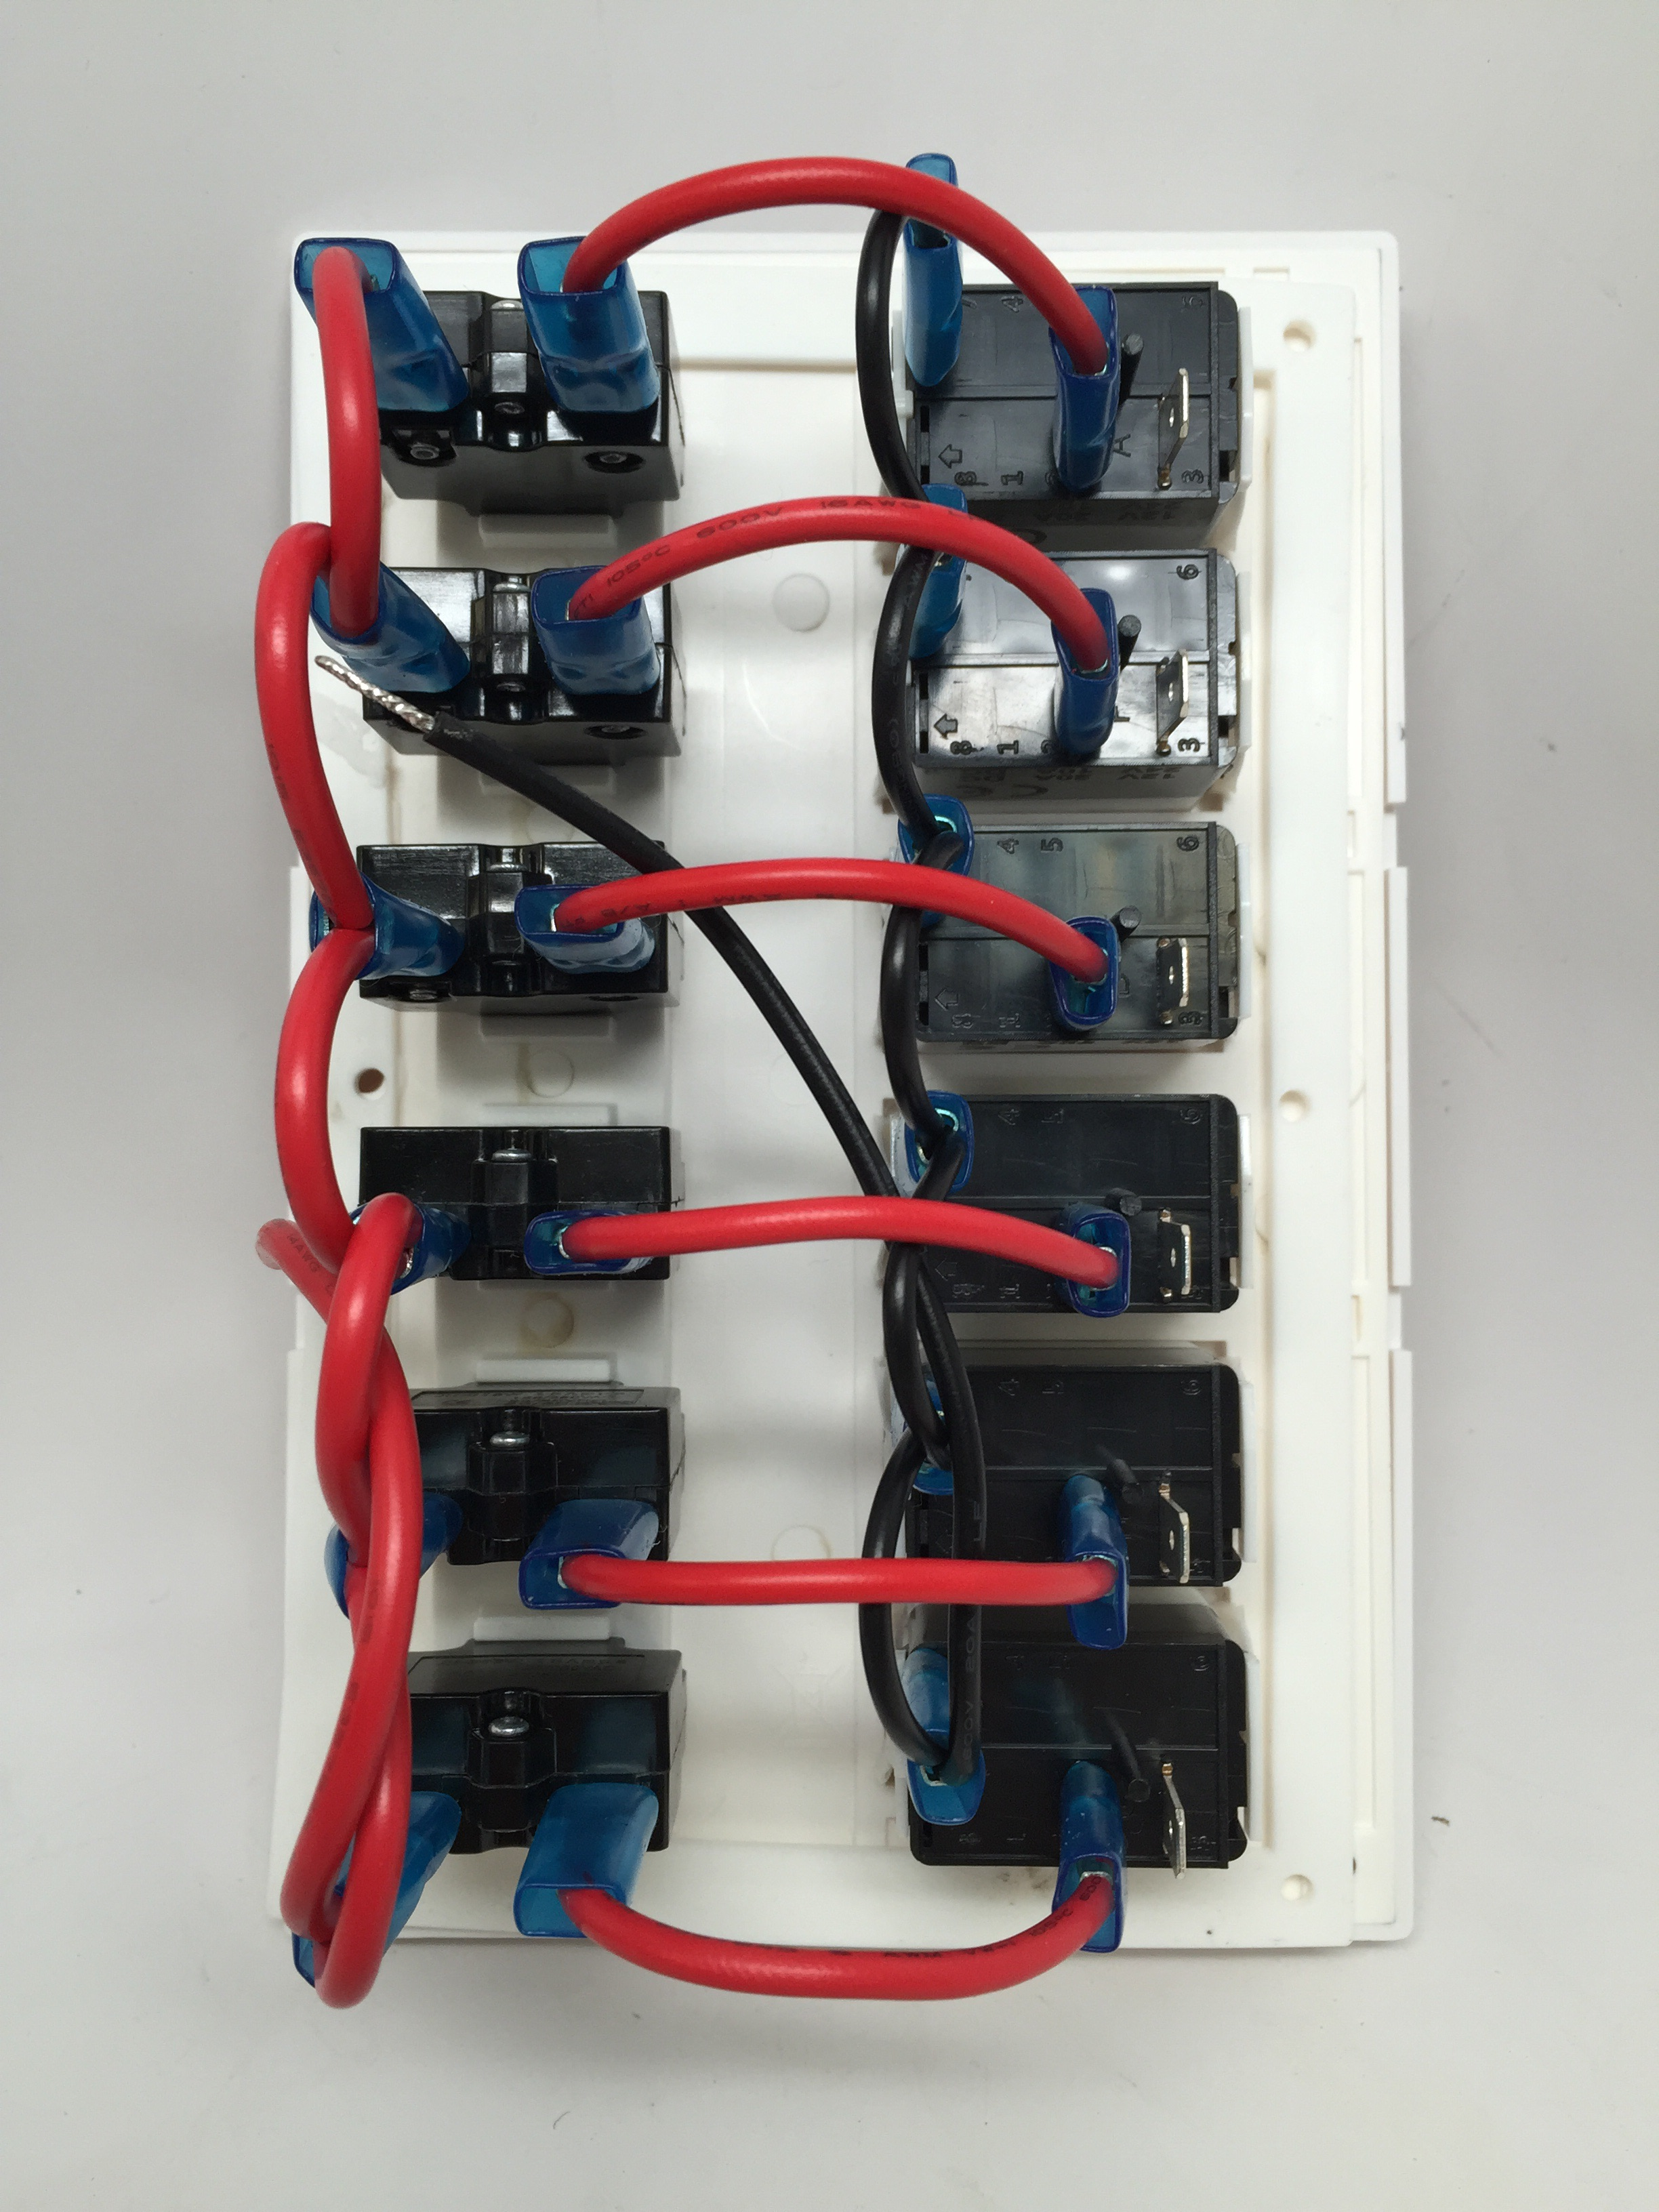 MARINE       BOAT    WATERPROOF WHITE    SWITCH    PANEL CIRCUIT BREAKER